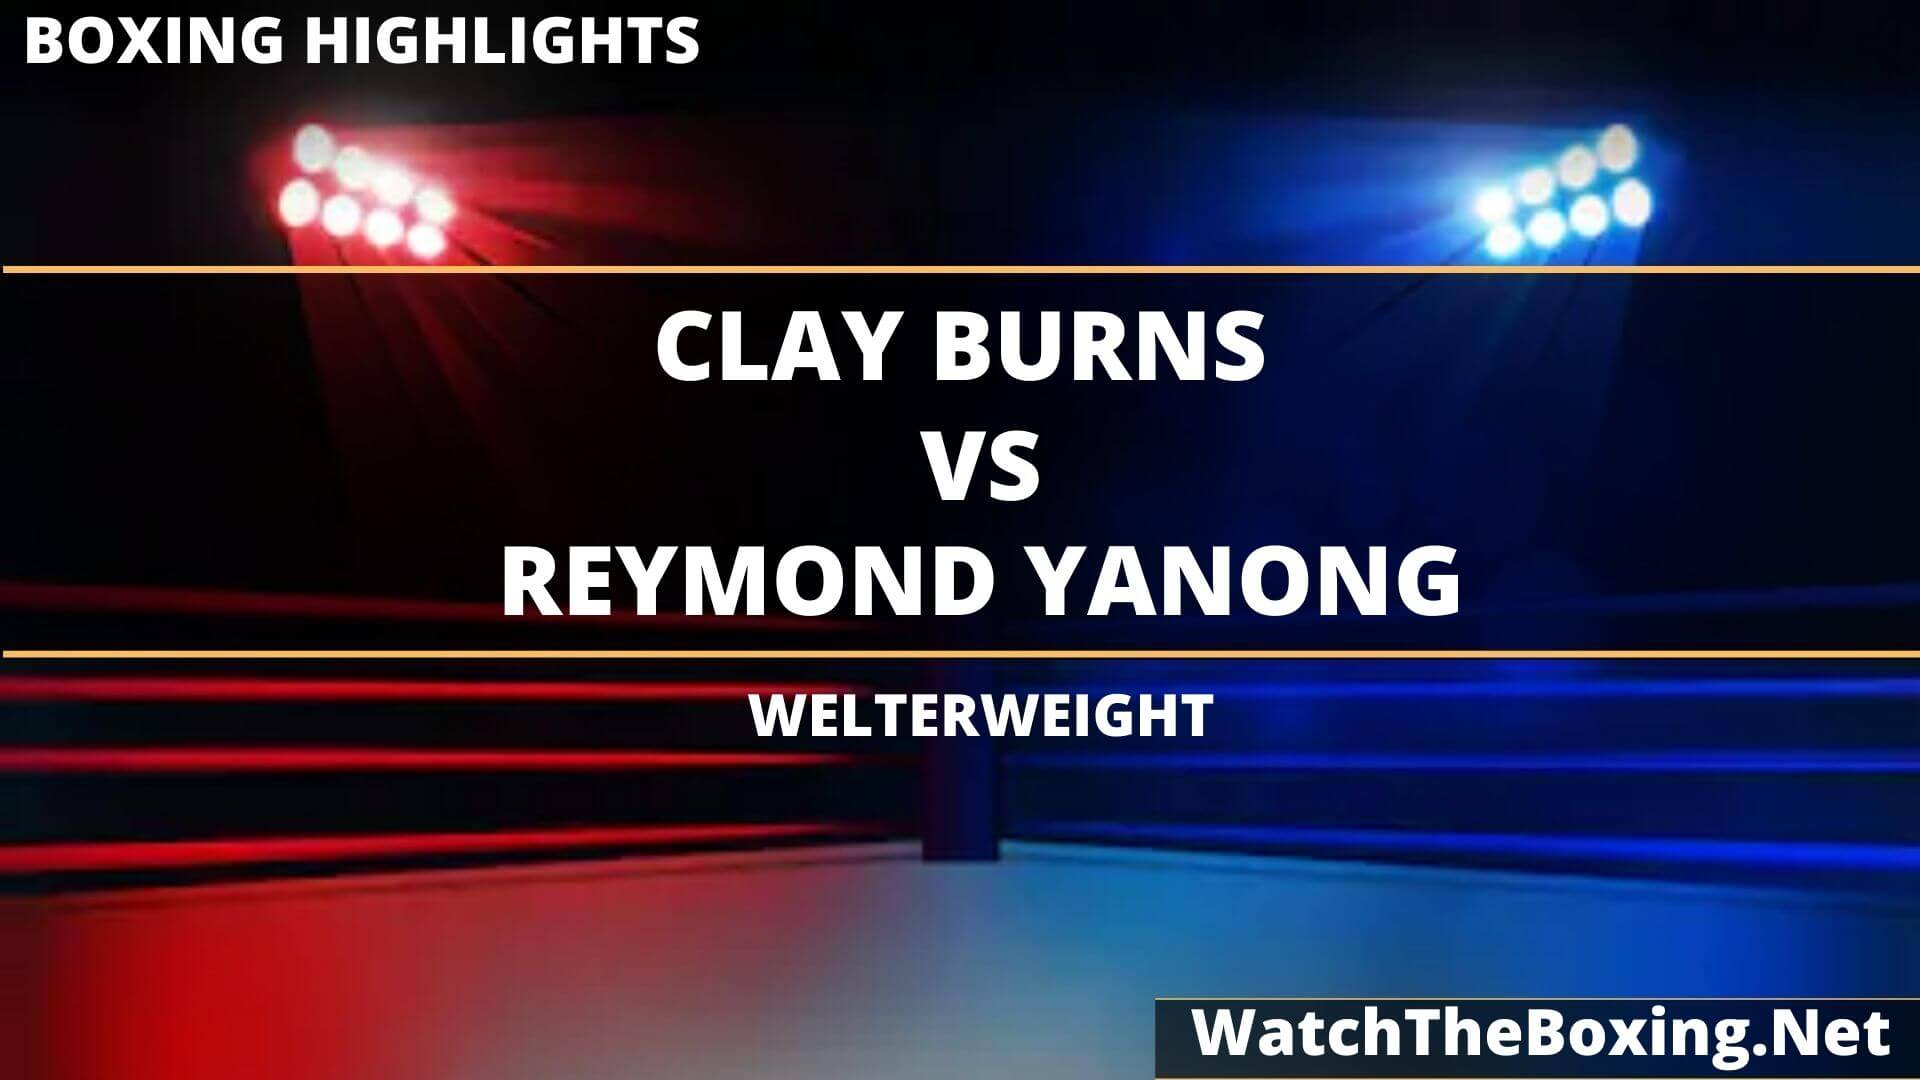 Clay Burns Vs Reymond Yanong Highlights 2020 Welterweight